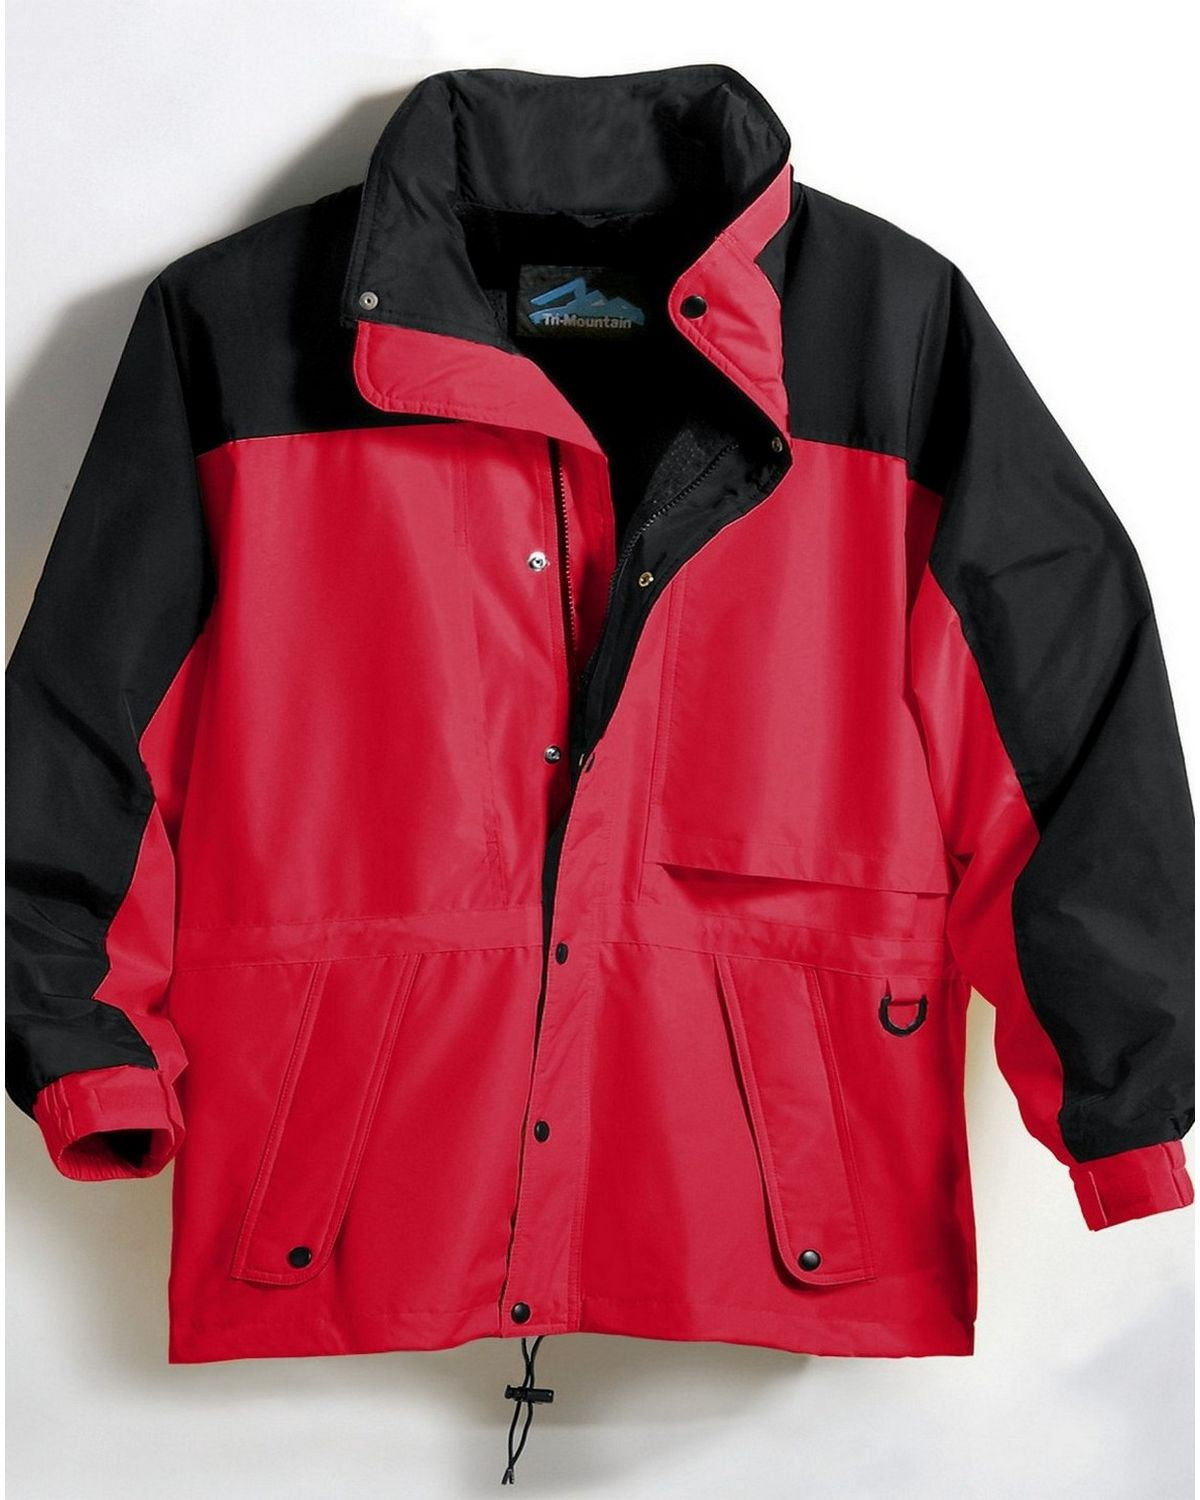 Tri-Mountain 9300 Climax - Red / Black - M 9300